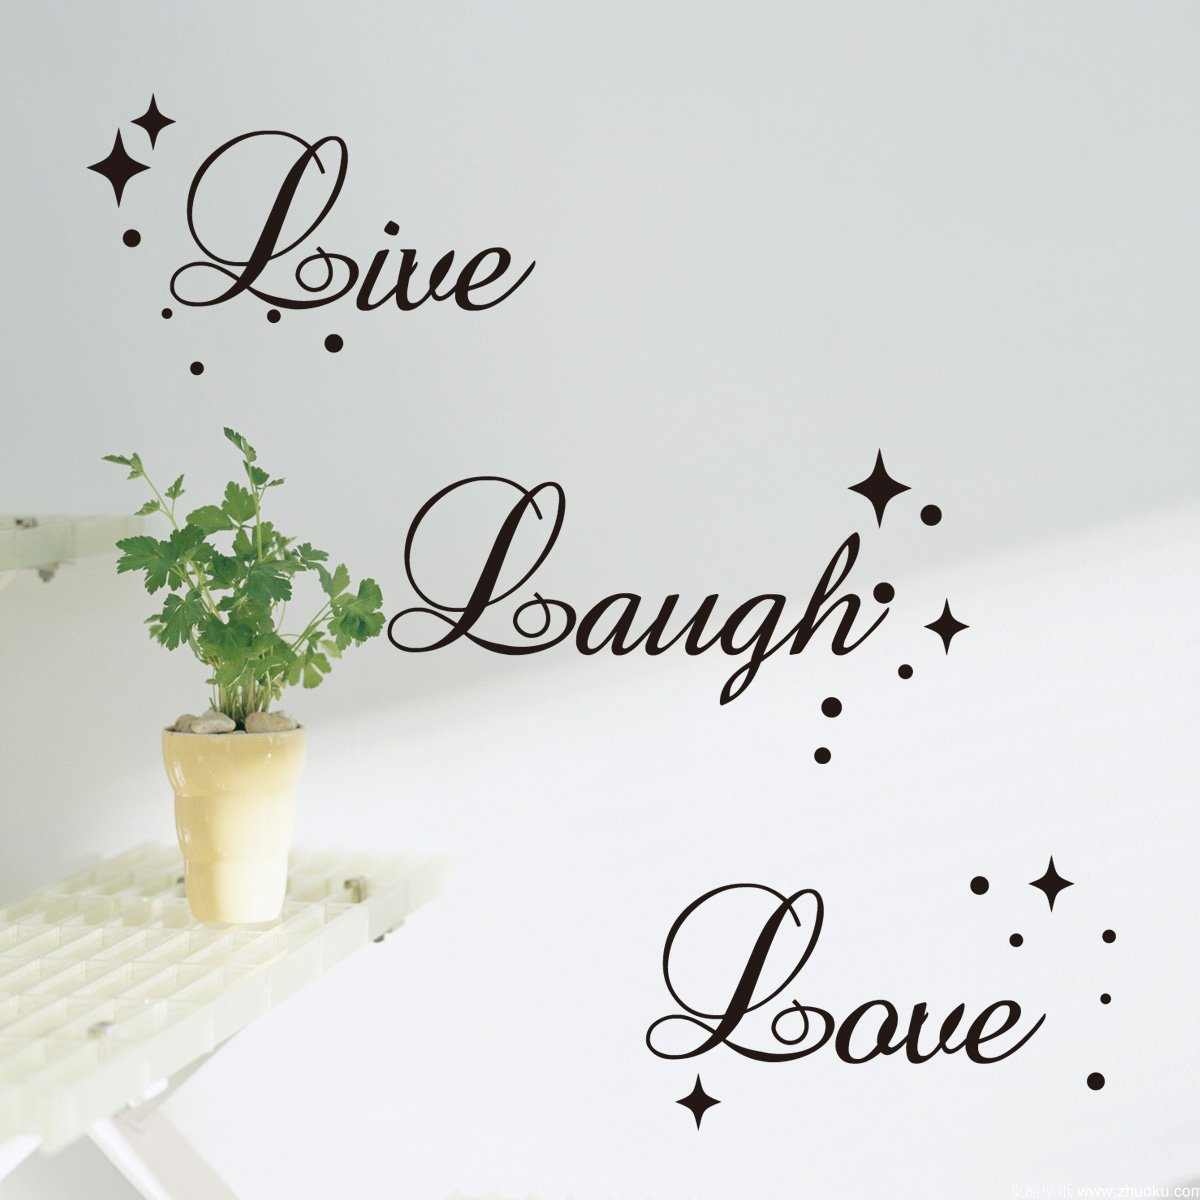 Fancy Writing Live Laugh Love Quote Wall Art Vinyl Sticker Decal Fashionable Decoration BlackLarge Size Amazoncouk Kitchen Home